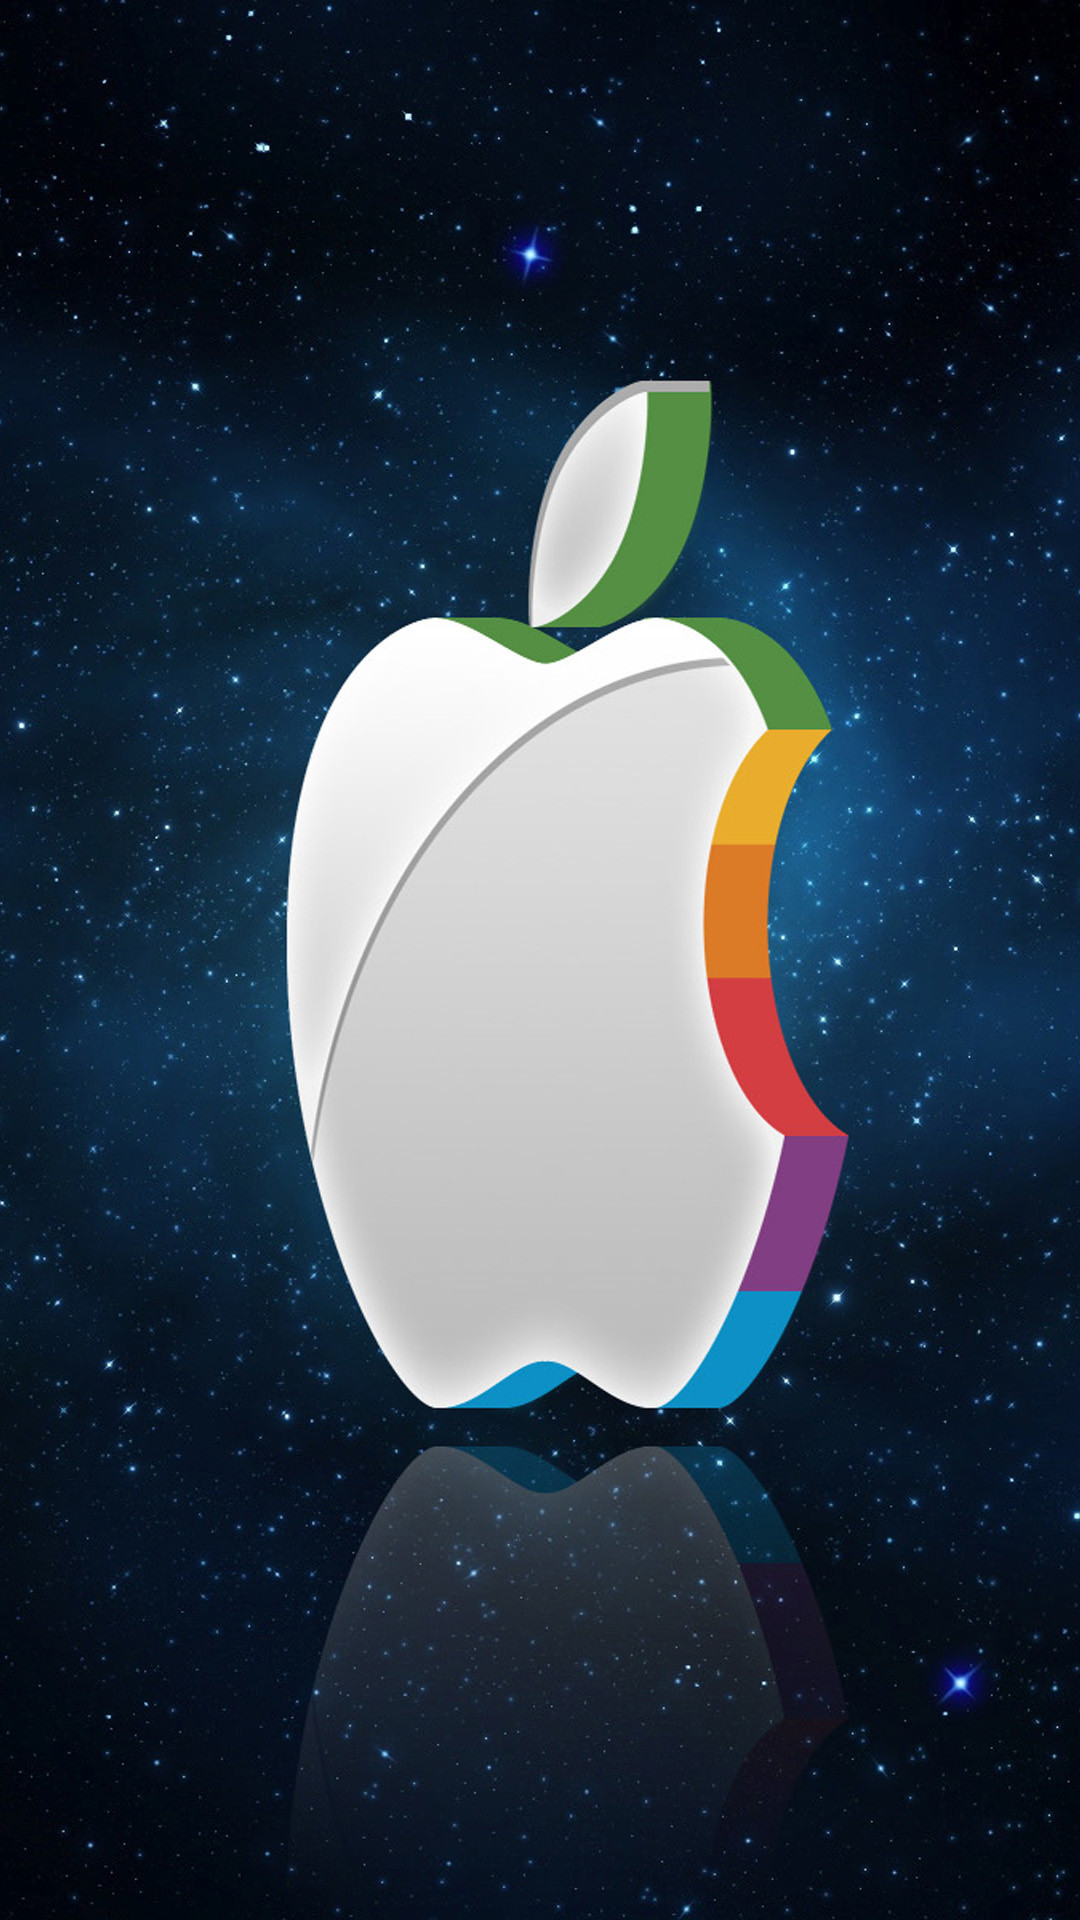 1080x1920 ... ios 7 live; apple wallpaper 3d on wallpaperget com ...